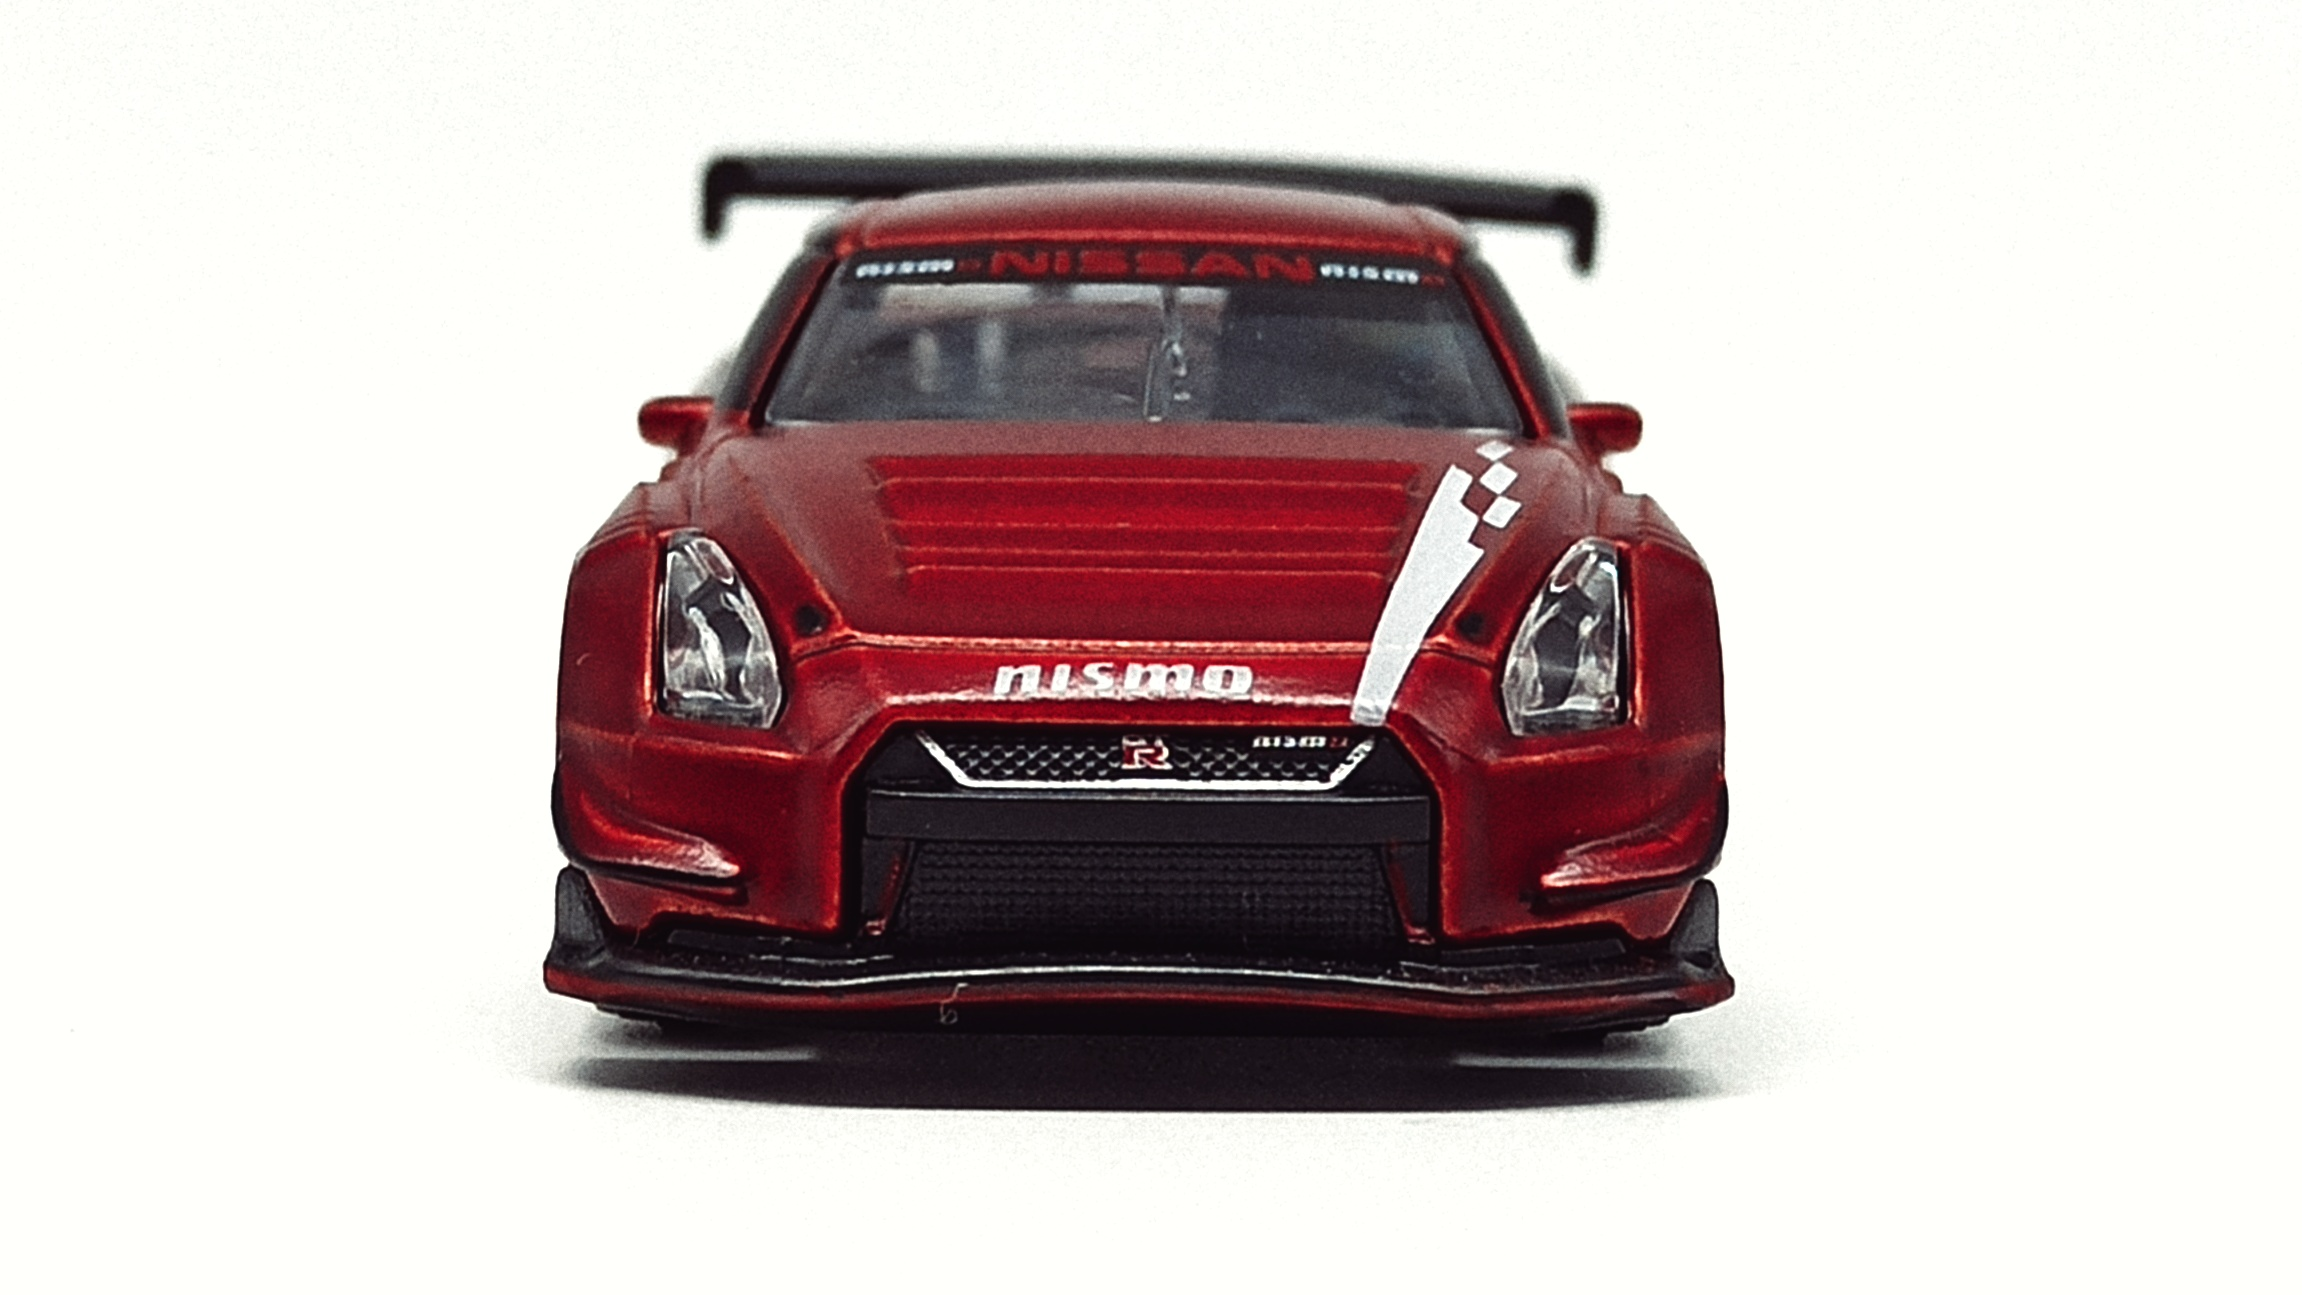 Majorette Nissan GT-R Nismo GT3 (214H) 2021 Limited Edition Series 7 metallic red front